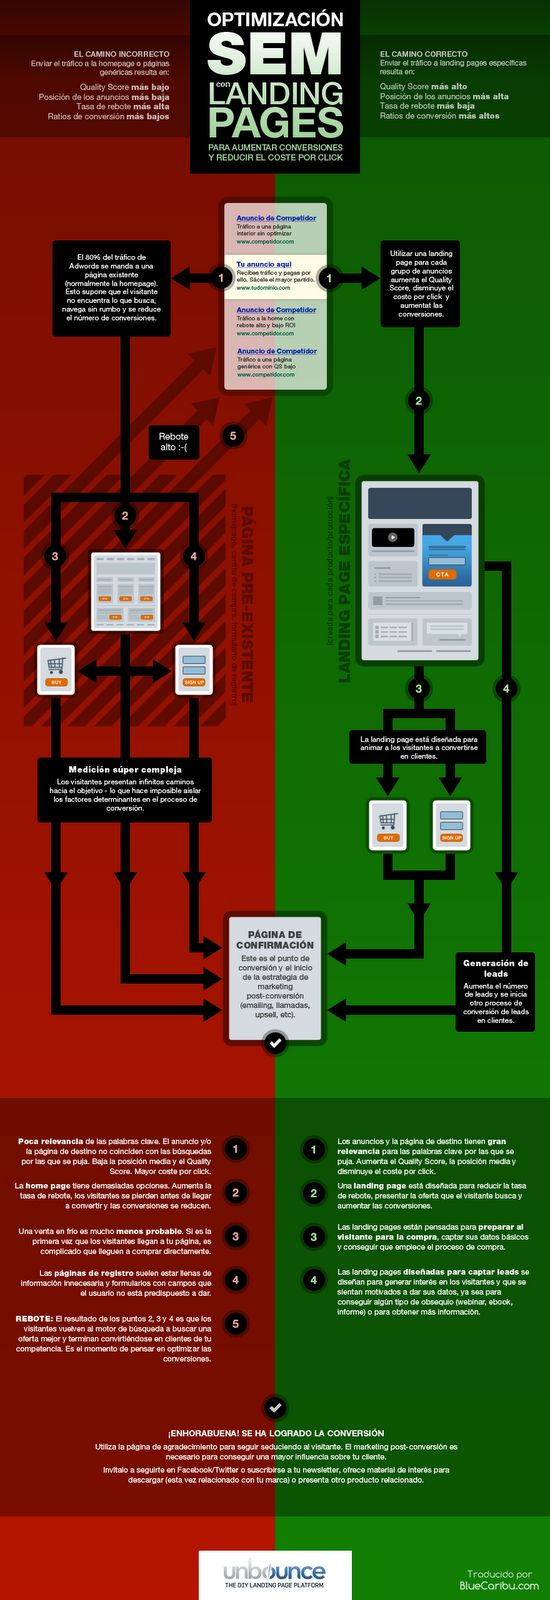 Optimización SEM con landing pages « Infografías de Marketing